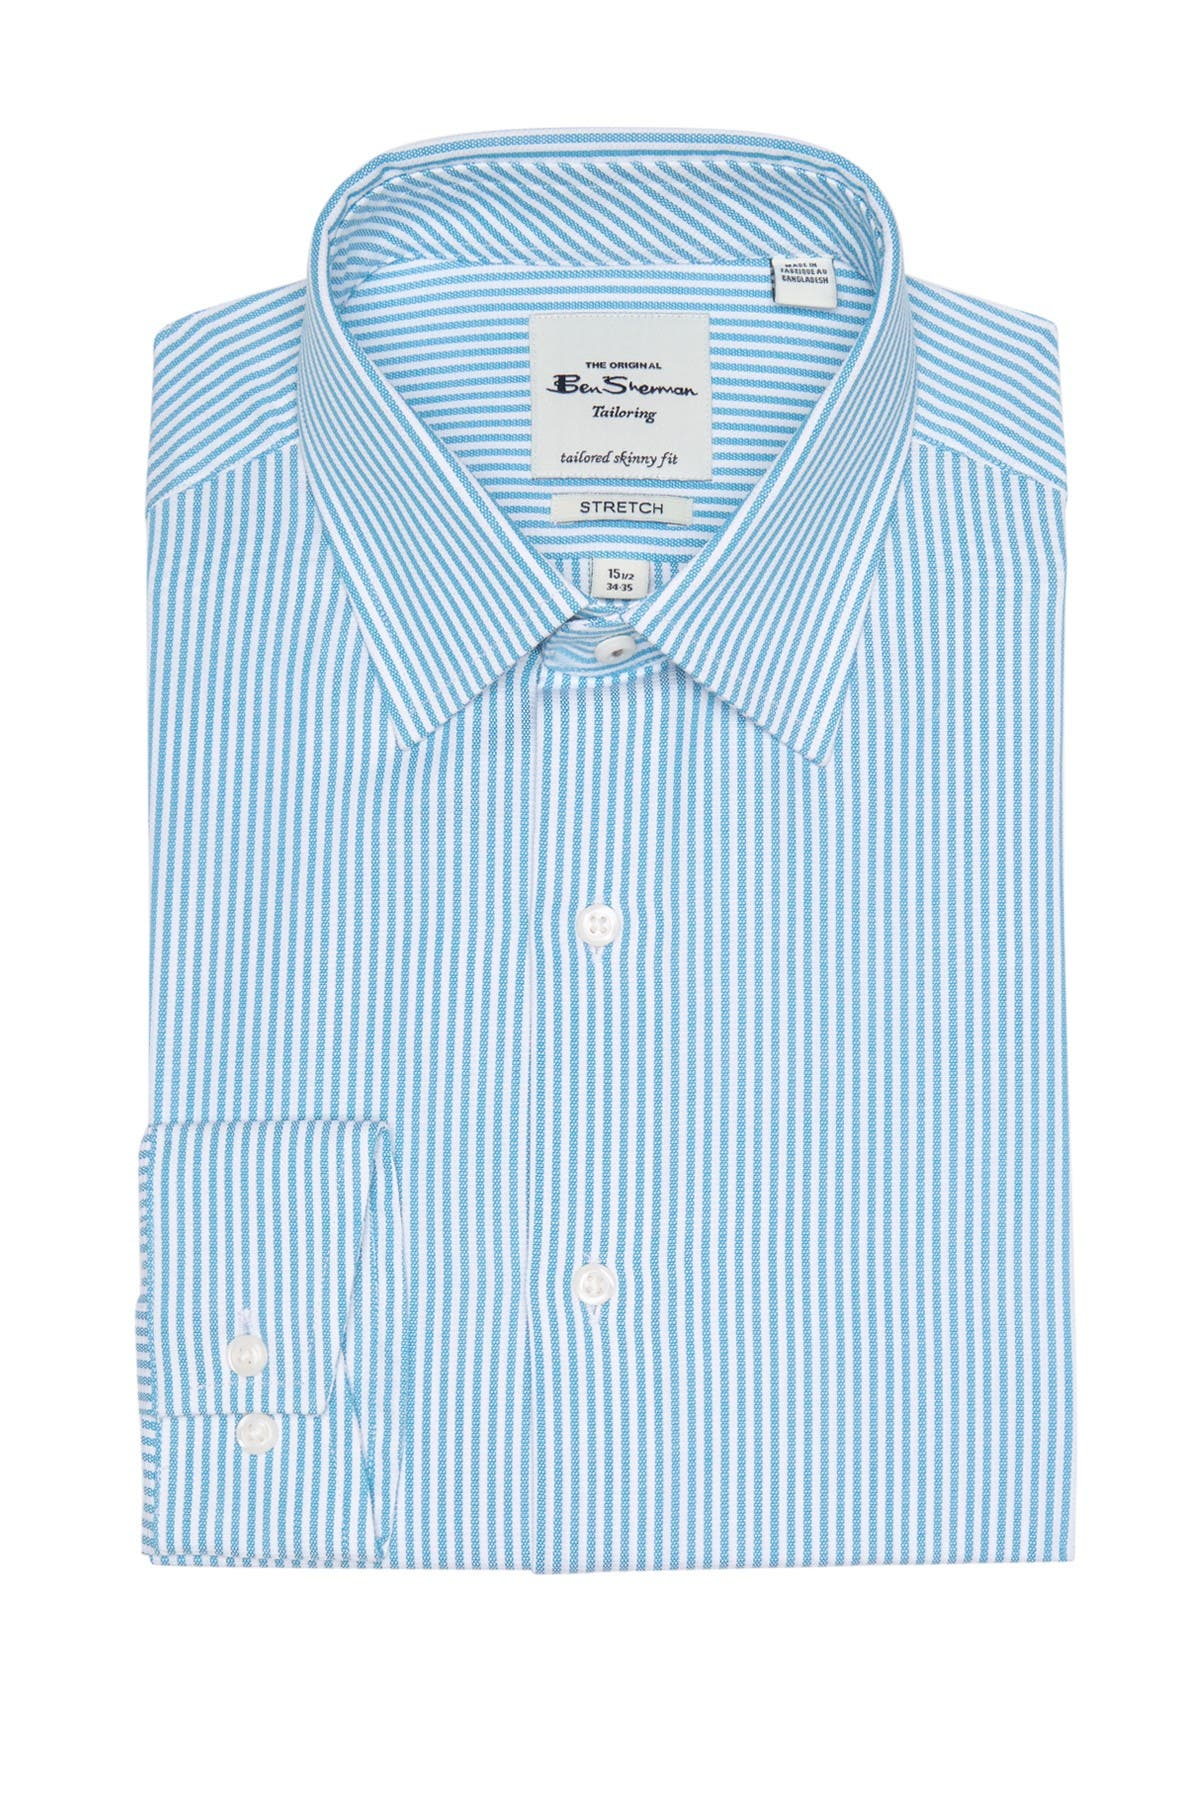 Image of Ben Sherman Teal Dobby Stripe Skinny Fit Dress Shirt